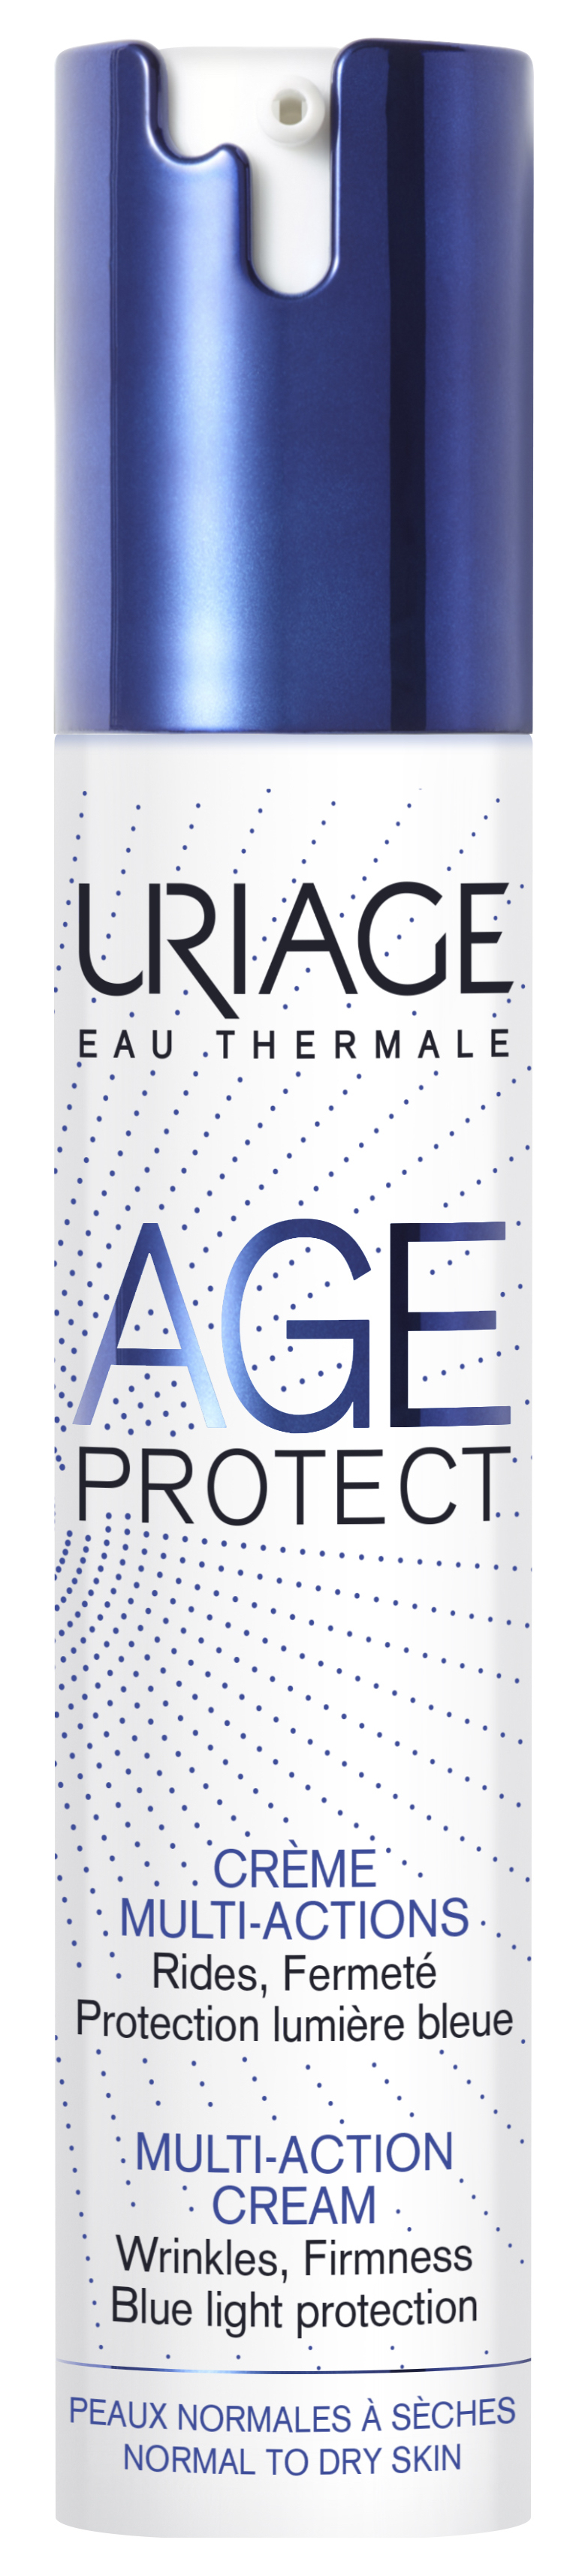 Crema Multi Accion Uriage Age Protect